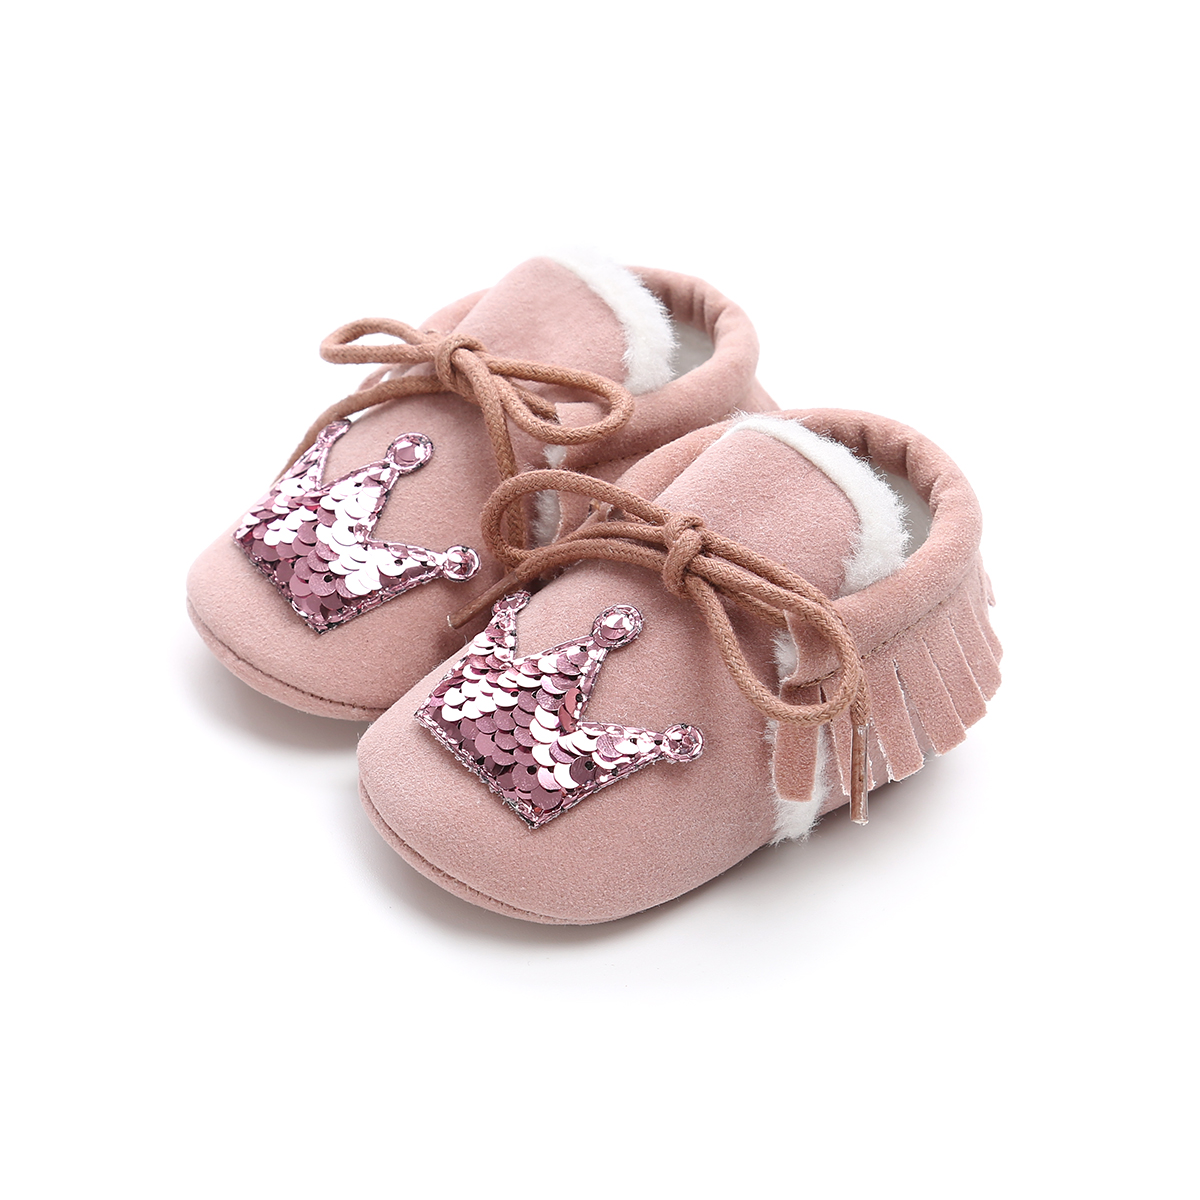 Newborn Baby Kids Girl Bow Flats Sneakers Prewalkers Flats Soft Crib Sole Shoes